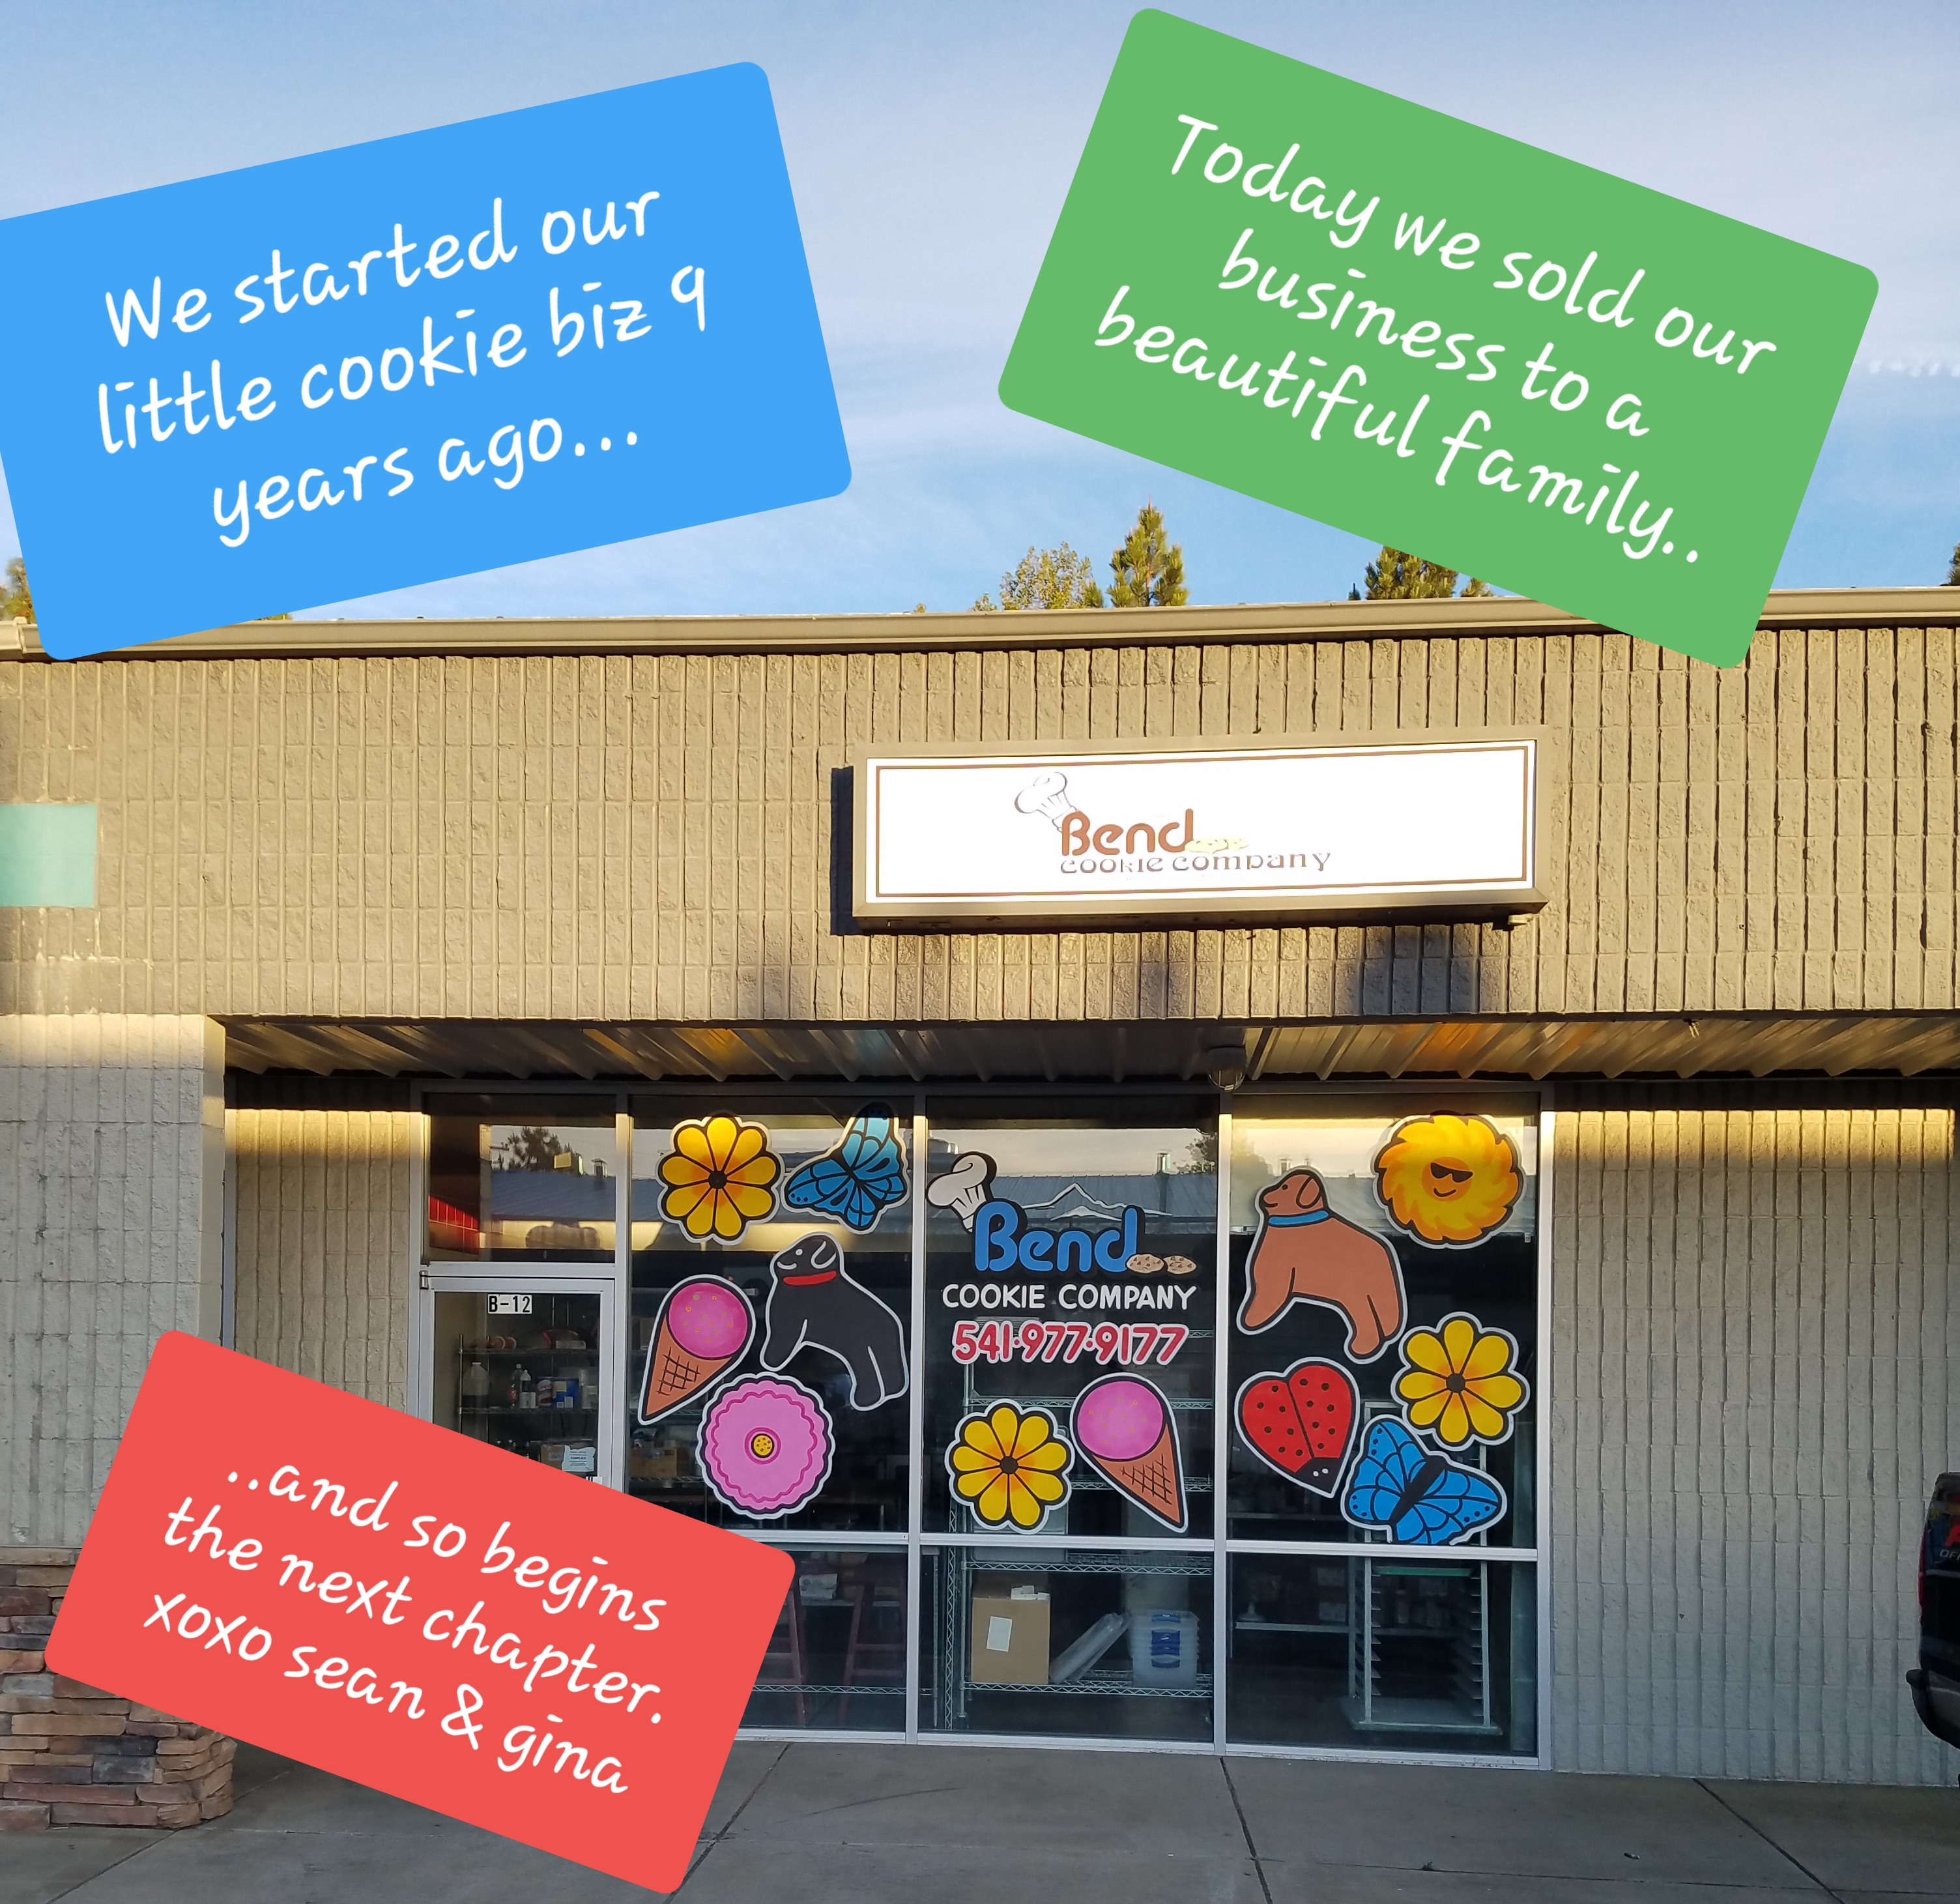 We built our business from scratch and sold Bend Cookie Company.